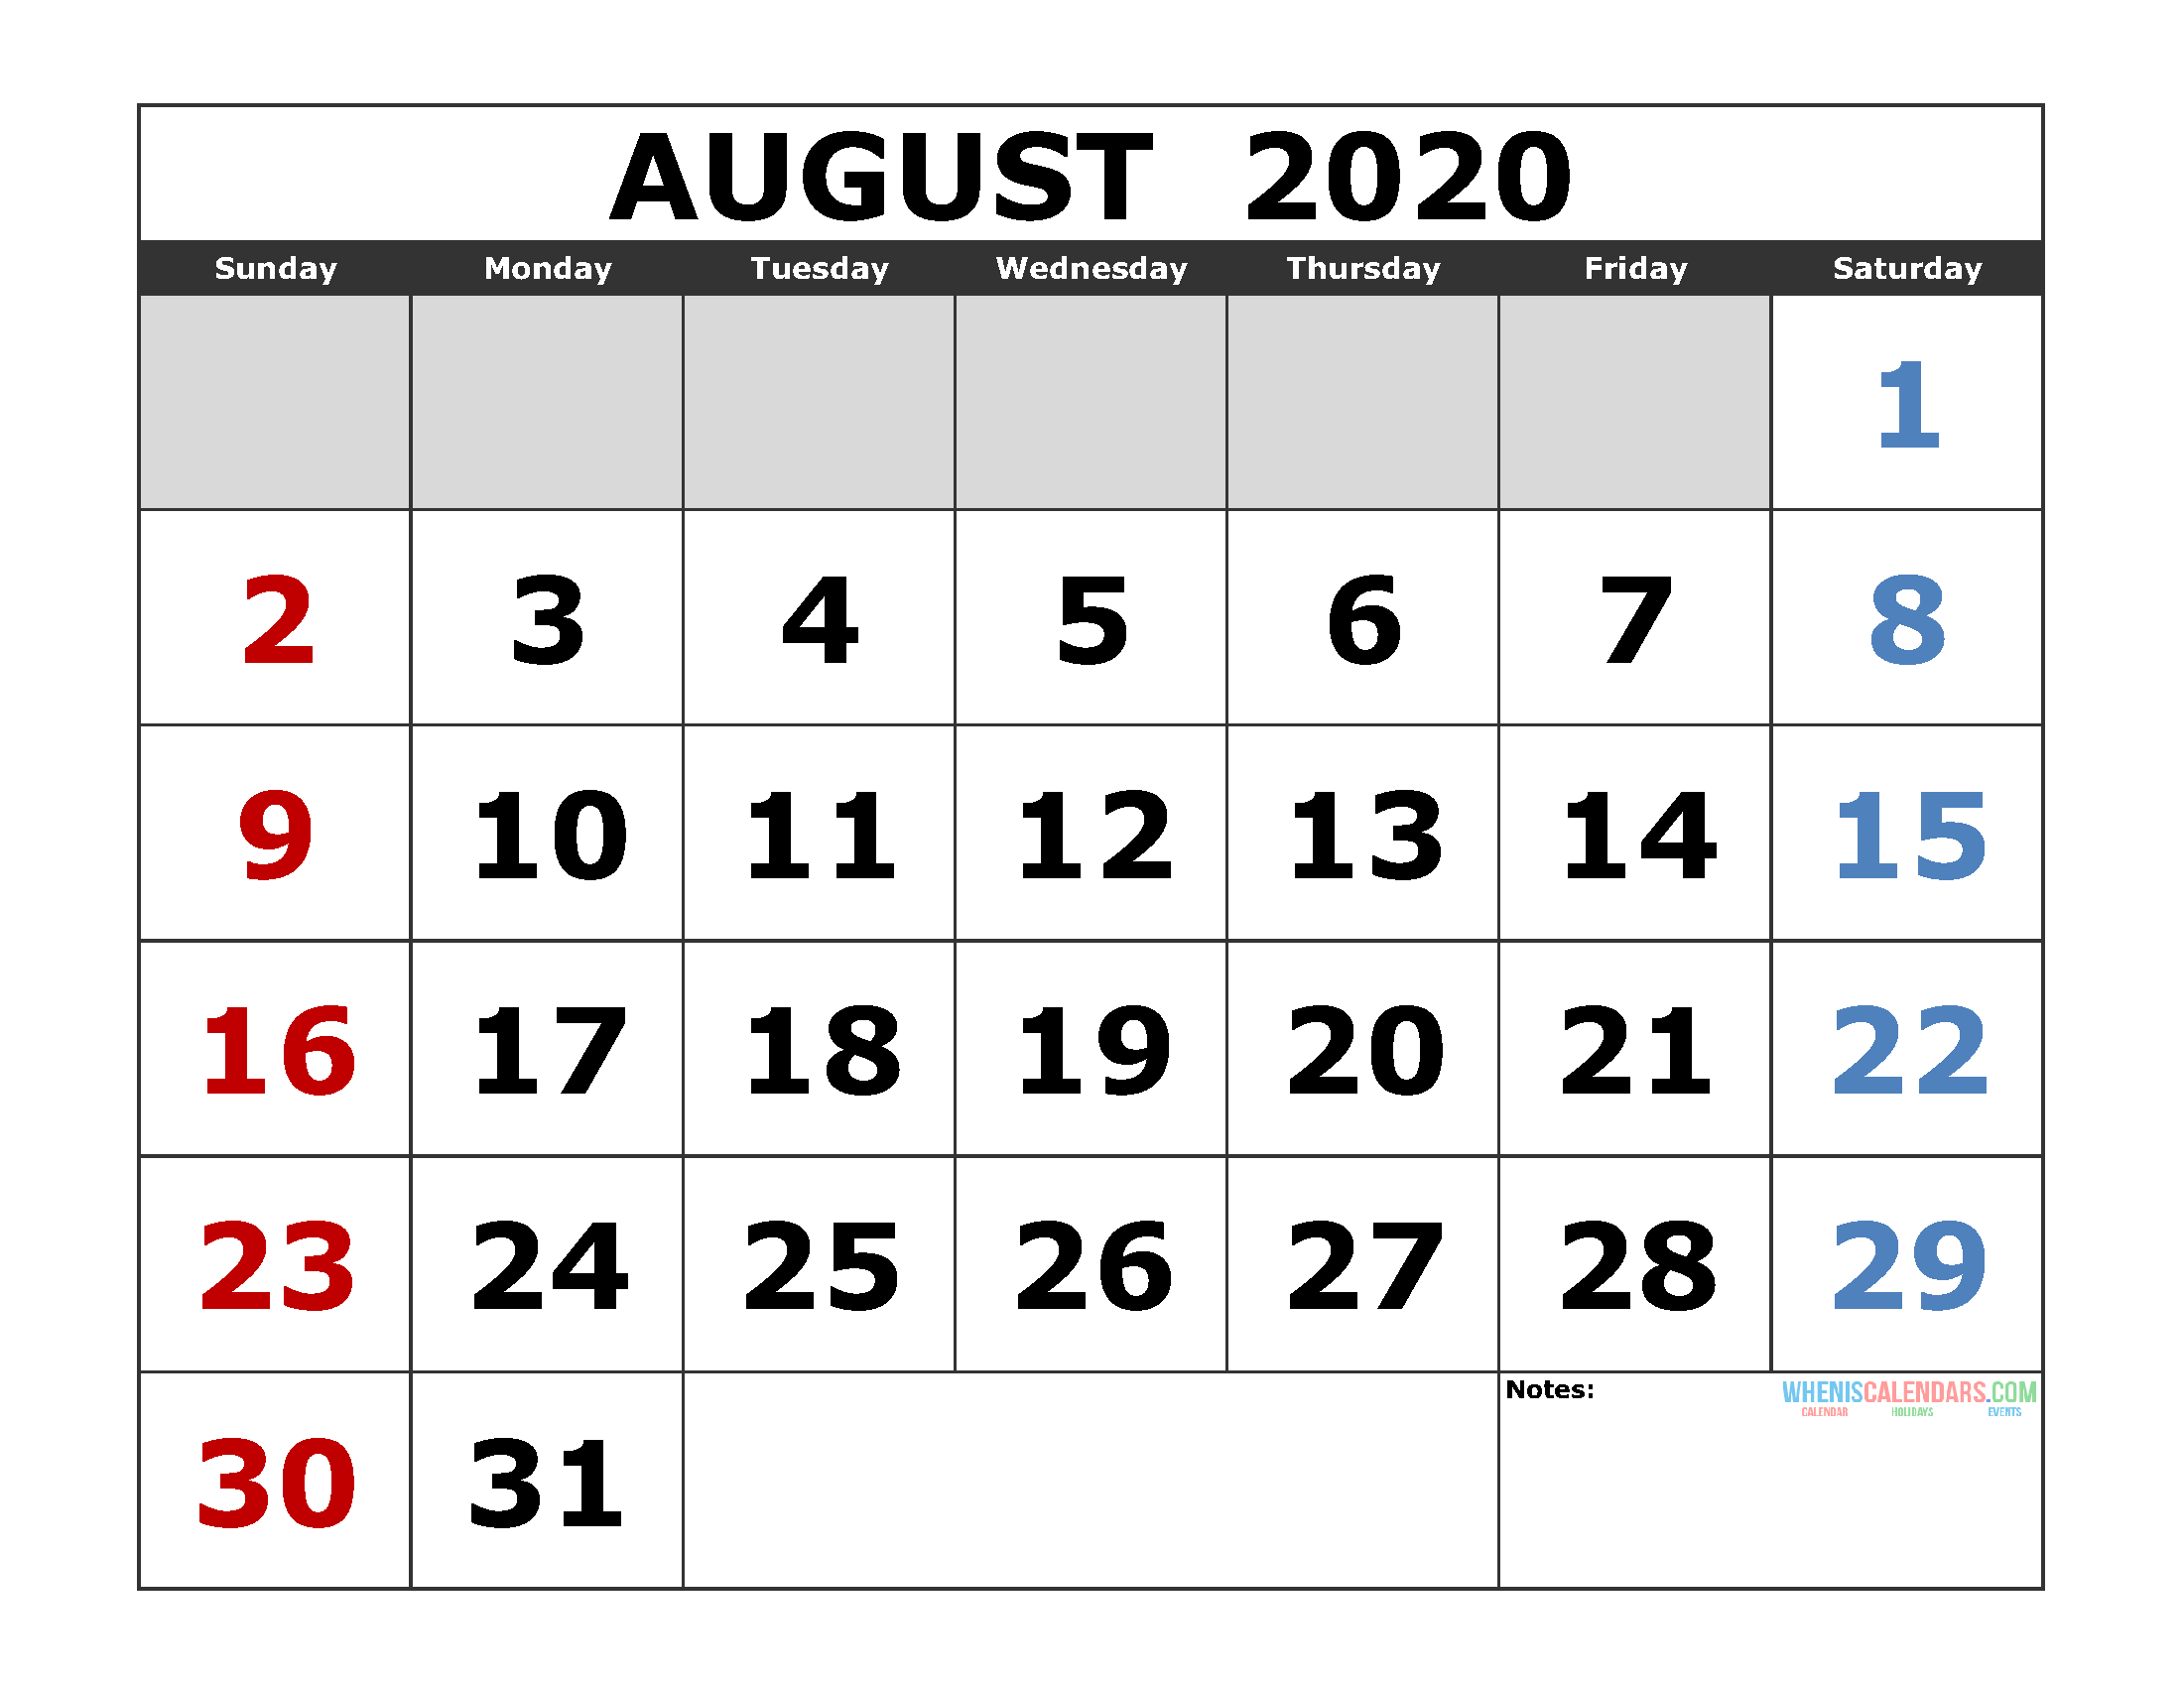 August 2020 Printable Calendar August 2020 Printable Calendar Template Excel, PDF, Image [US